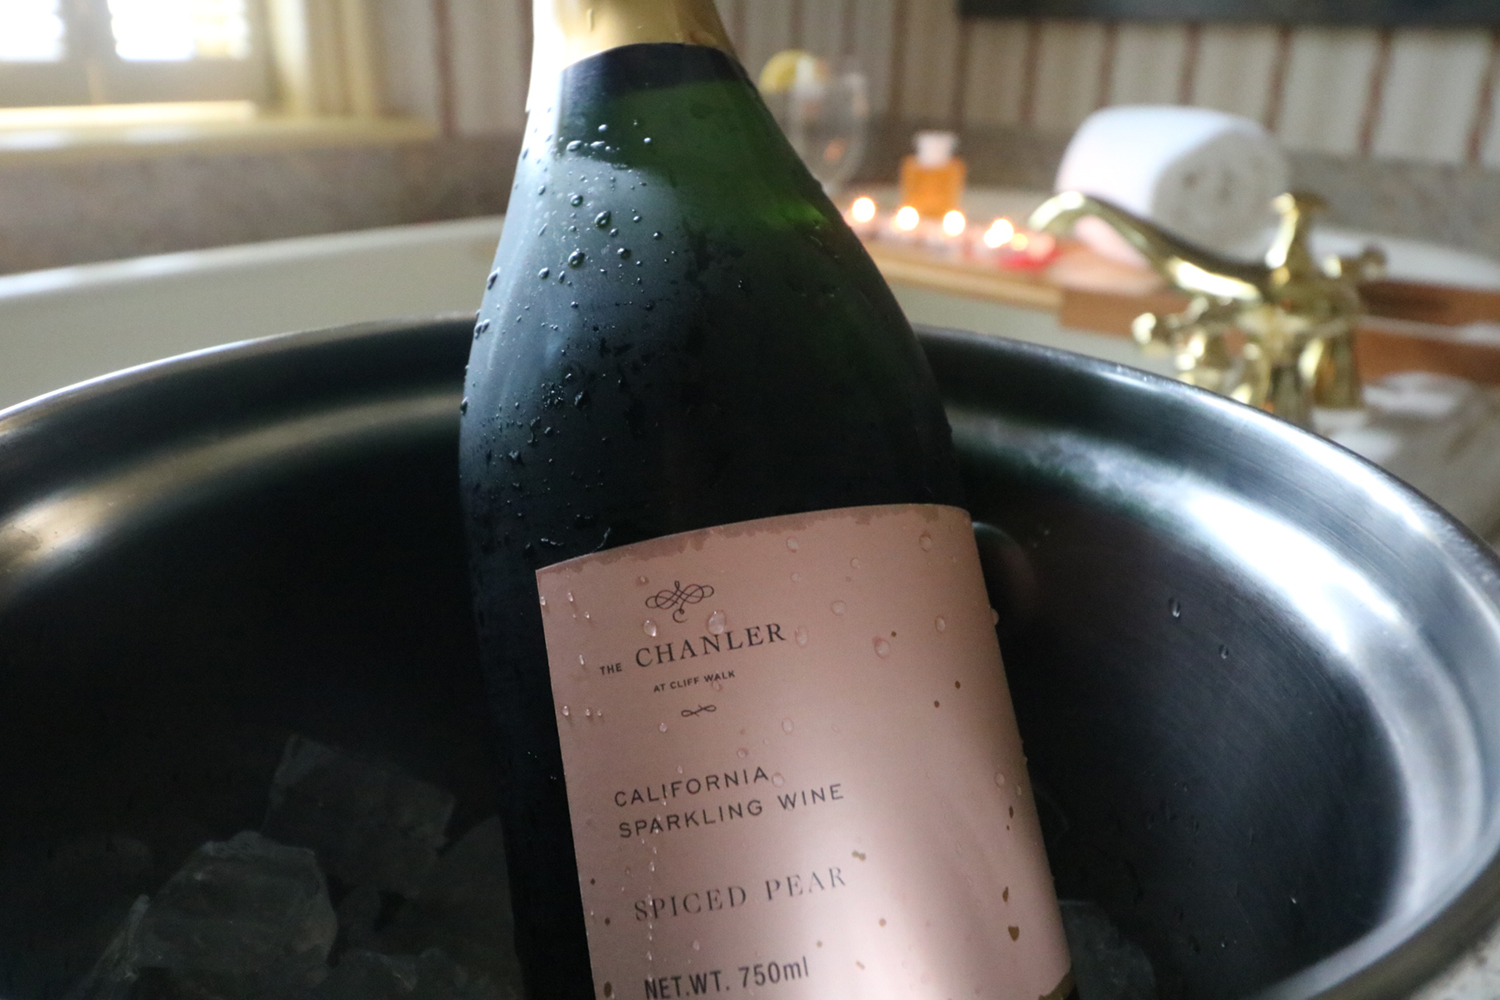 Spiced Pear Sparkling Wine-Cliff Notes-The Chanler.jpg